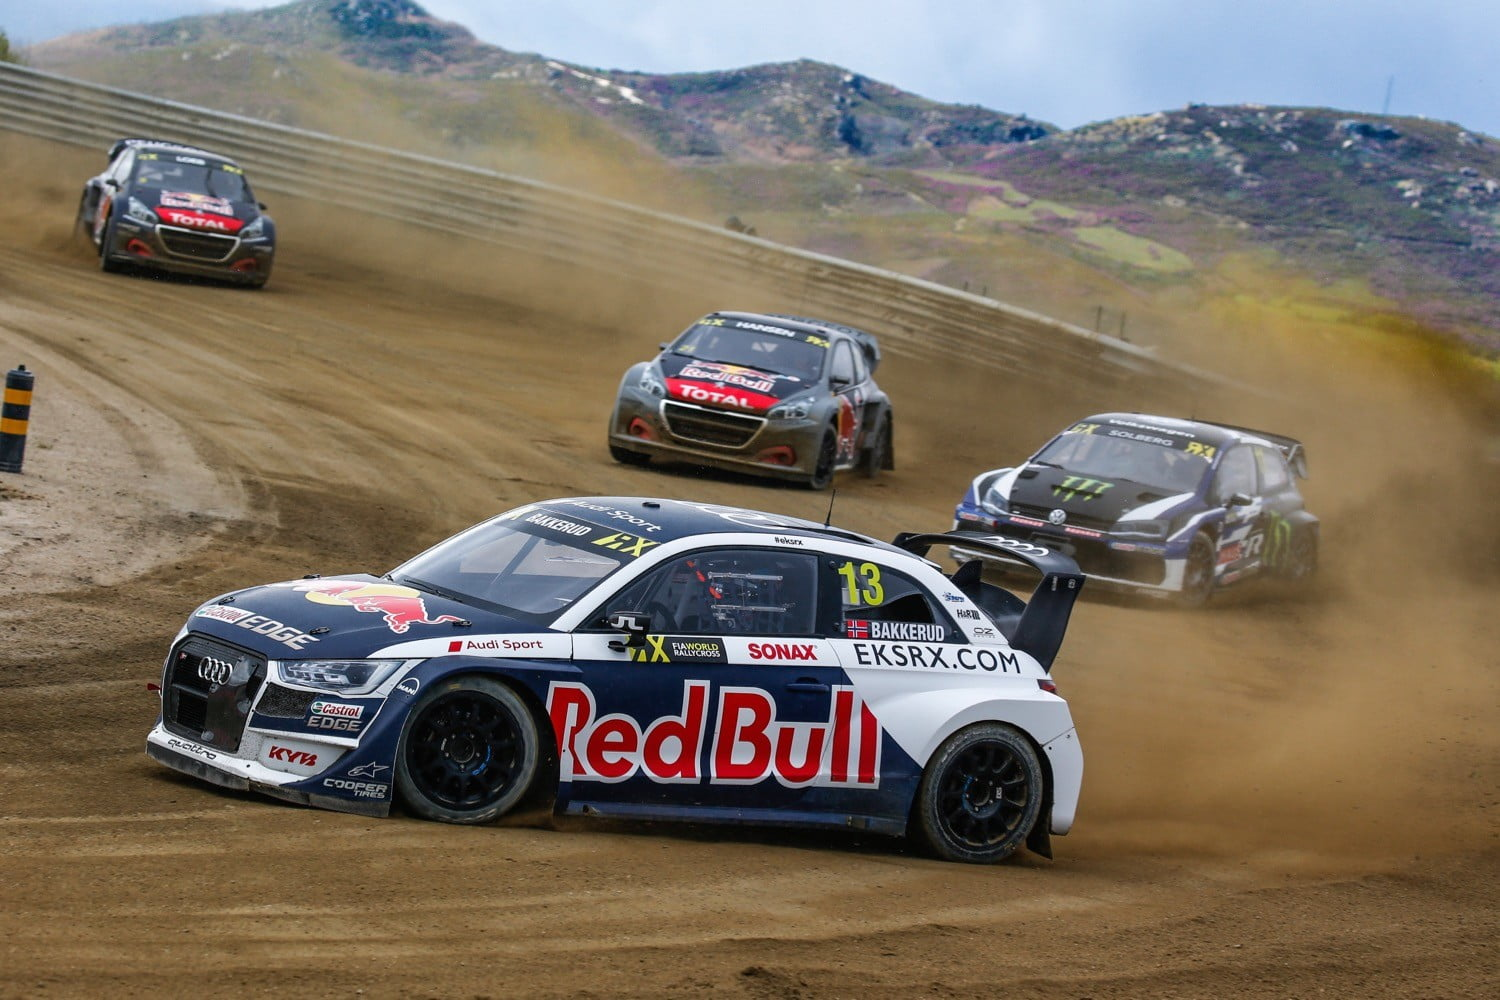 Fia World Rallycross Championship A New Race Series